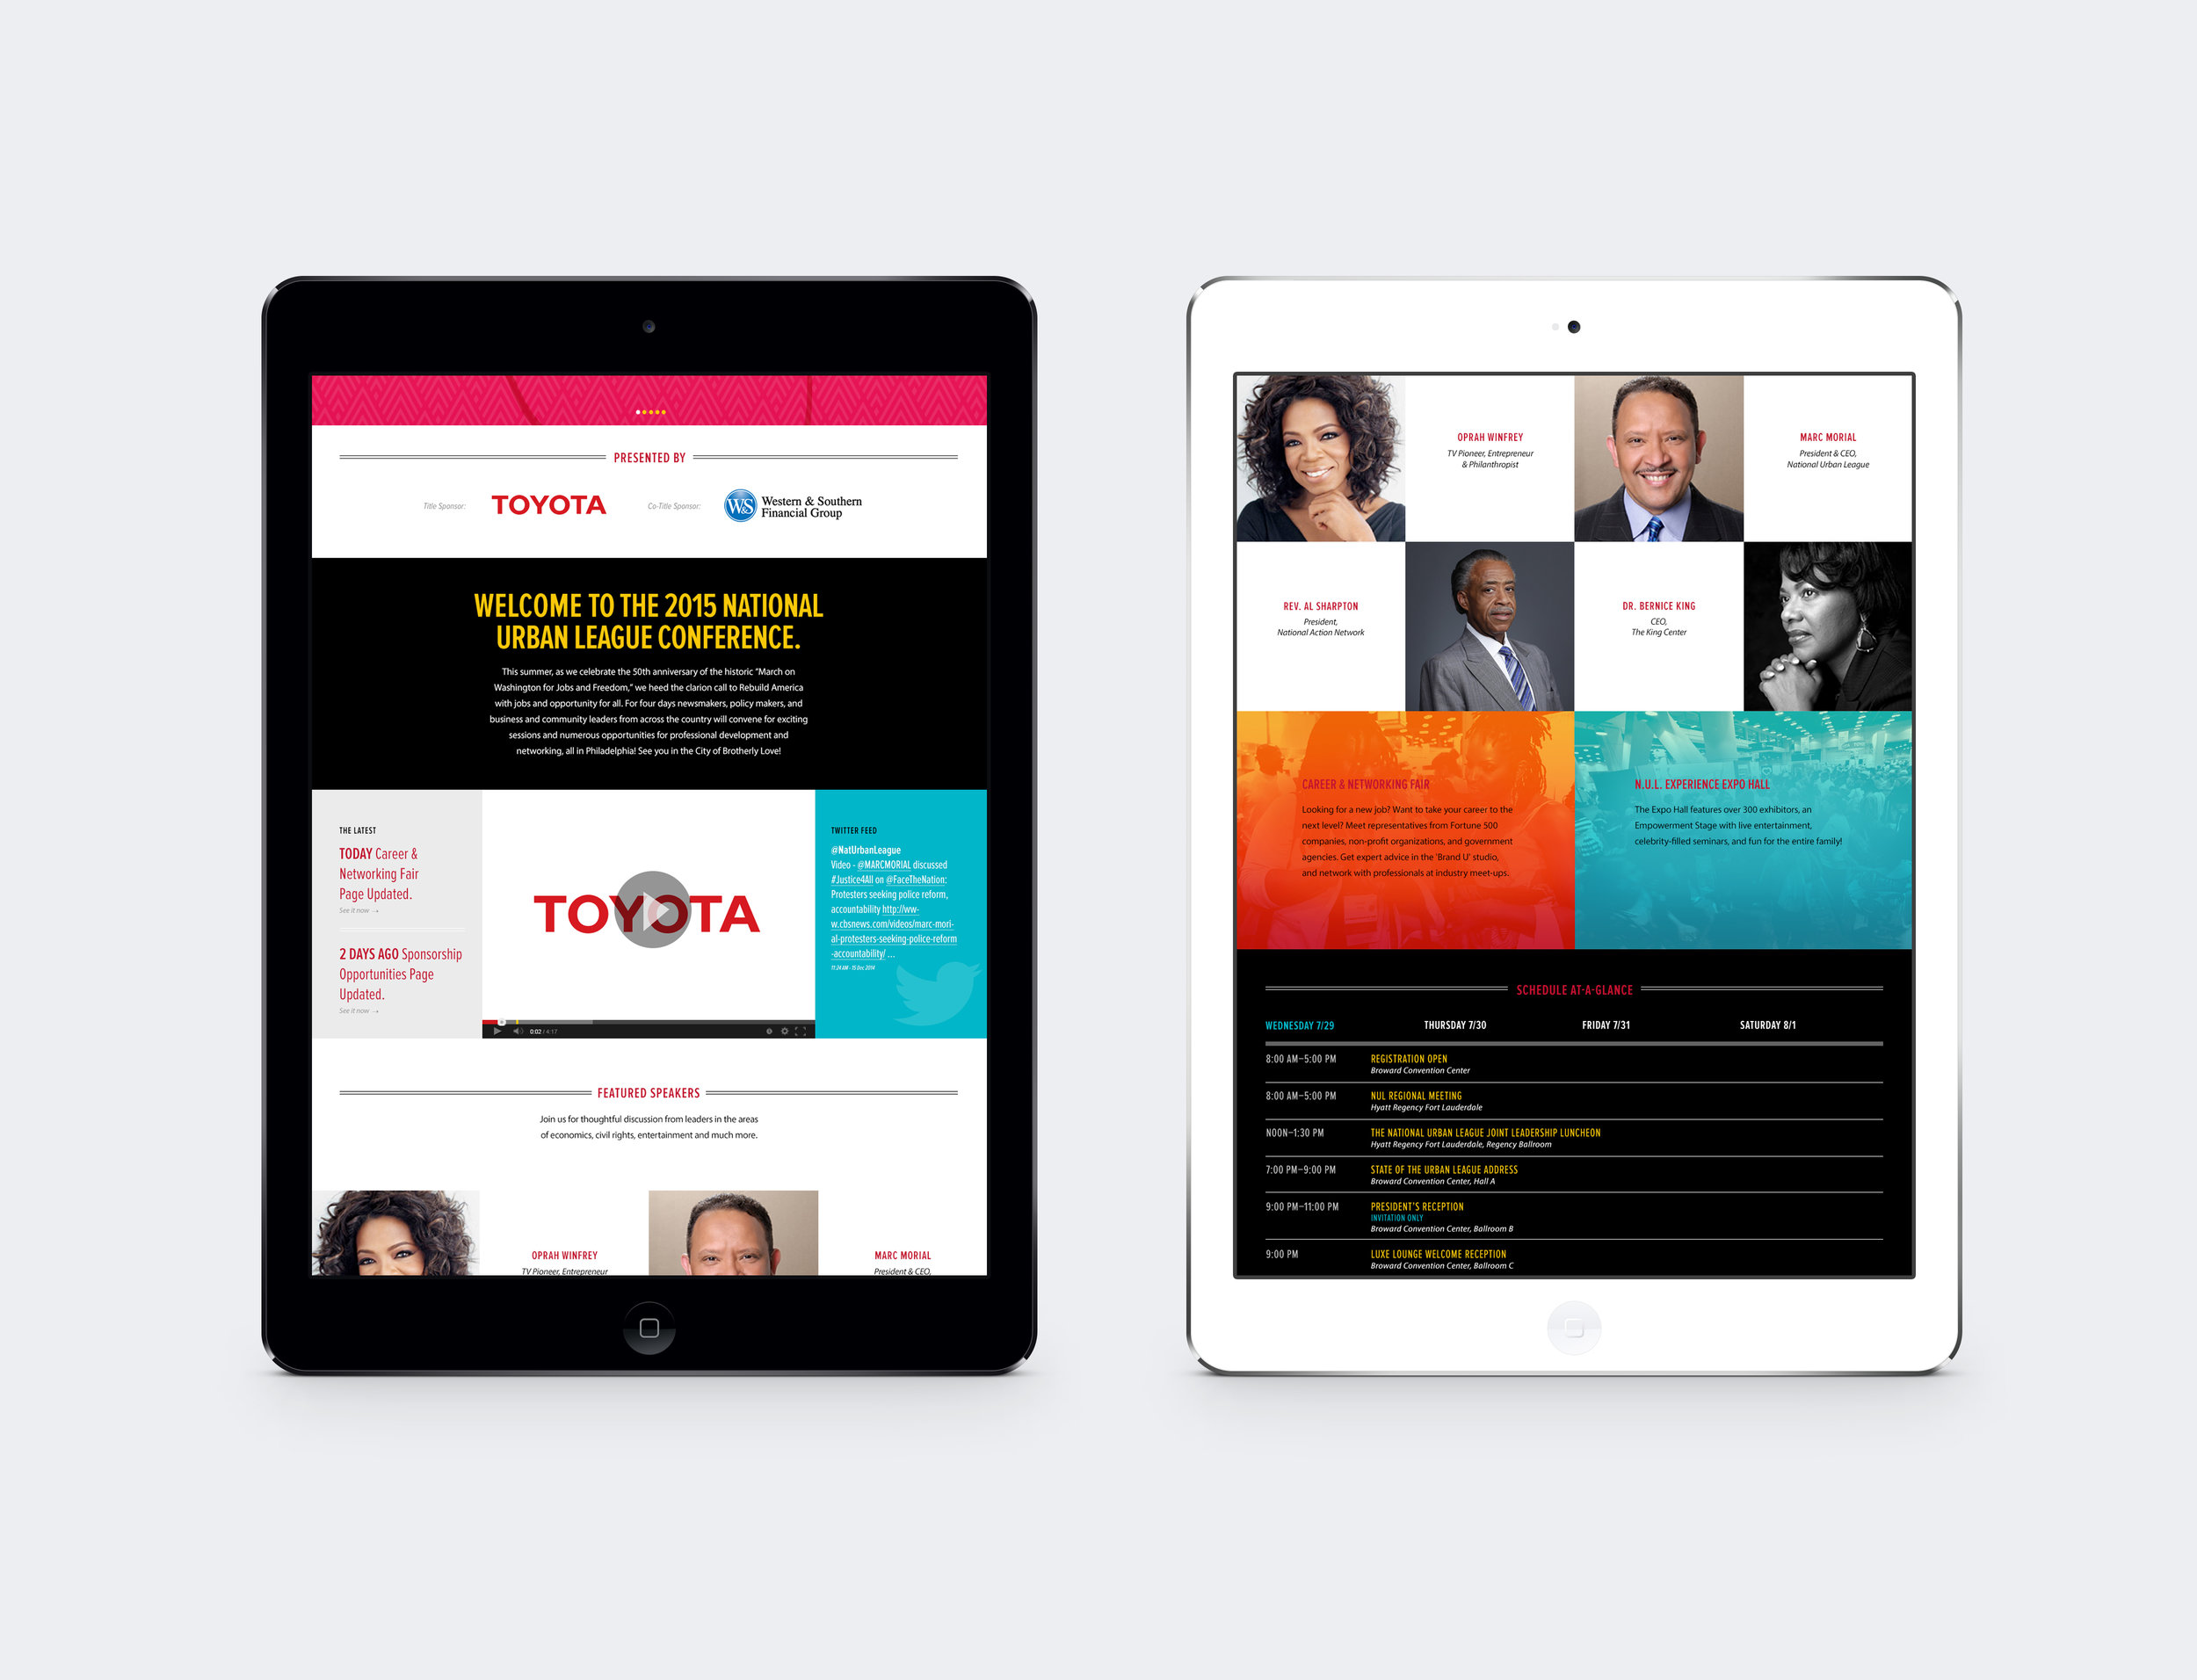 julierado-2015-national-urban-league-conference-collateral-website-ipad-mockup.jpg